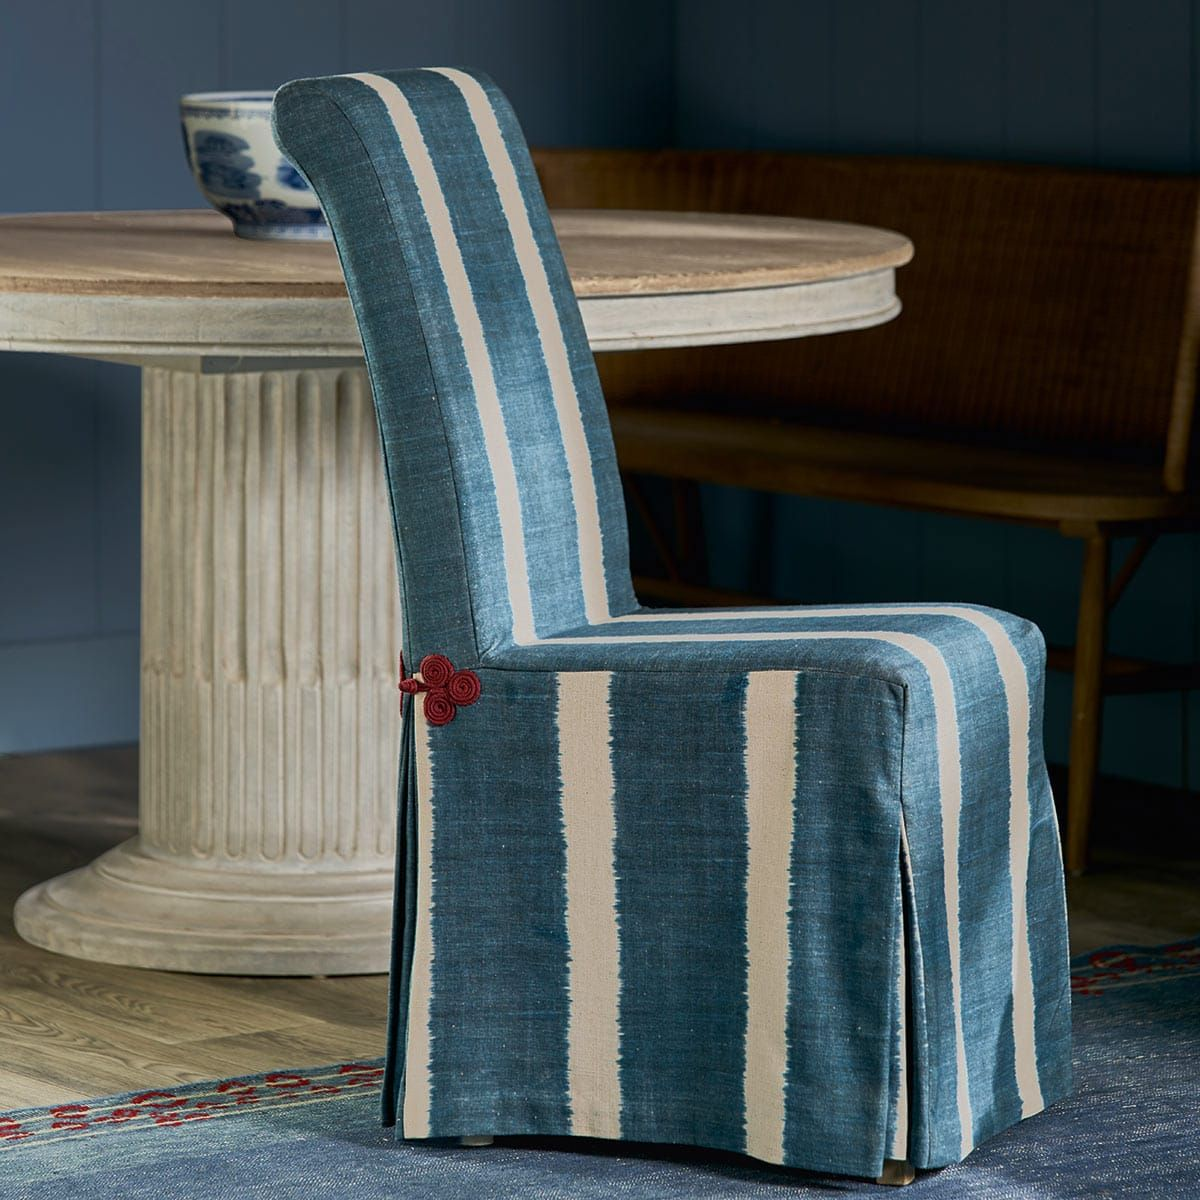 Ikat Stripe Loose Cover For Echo Dining Chair Dining Chairs Striped Dining Chairs Slipcovers For Chairs